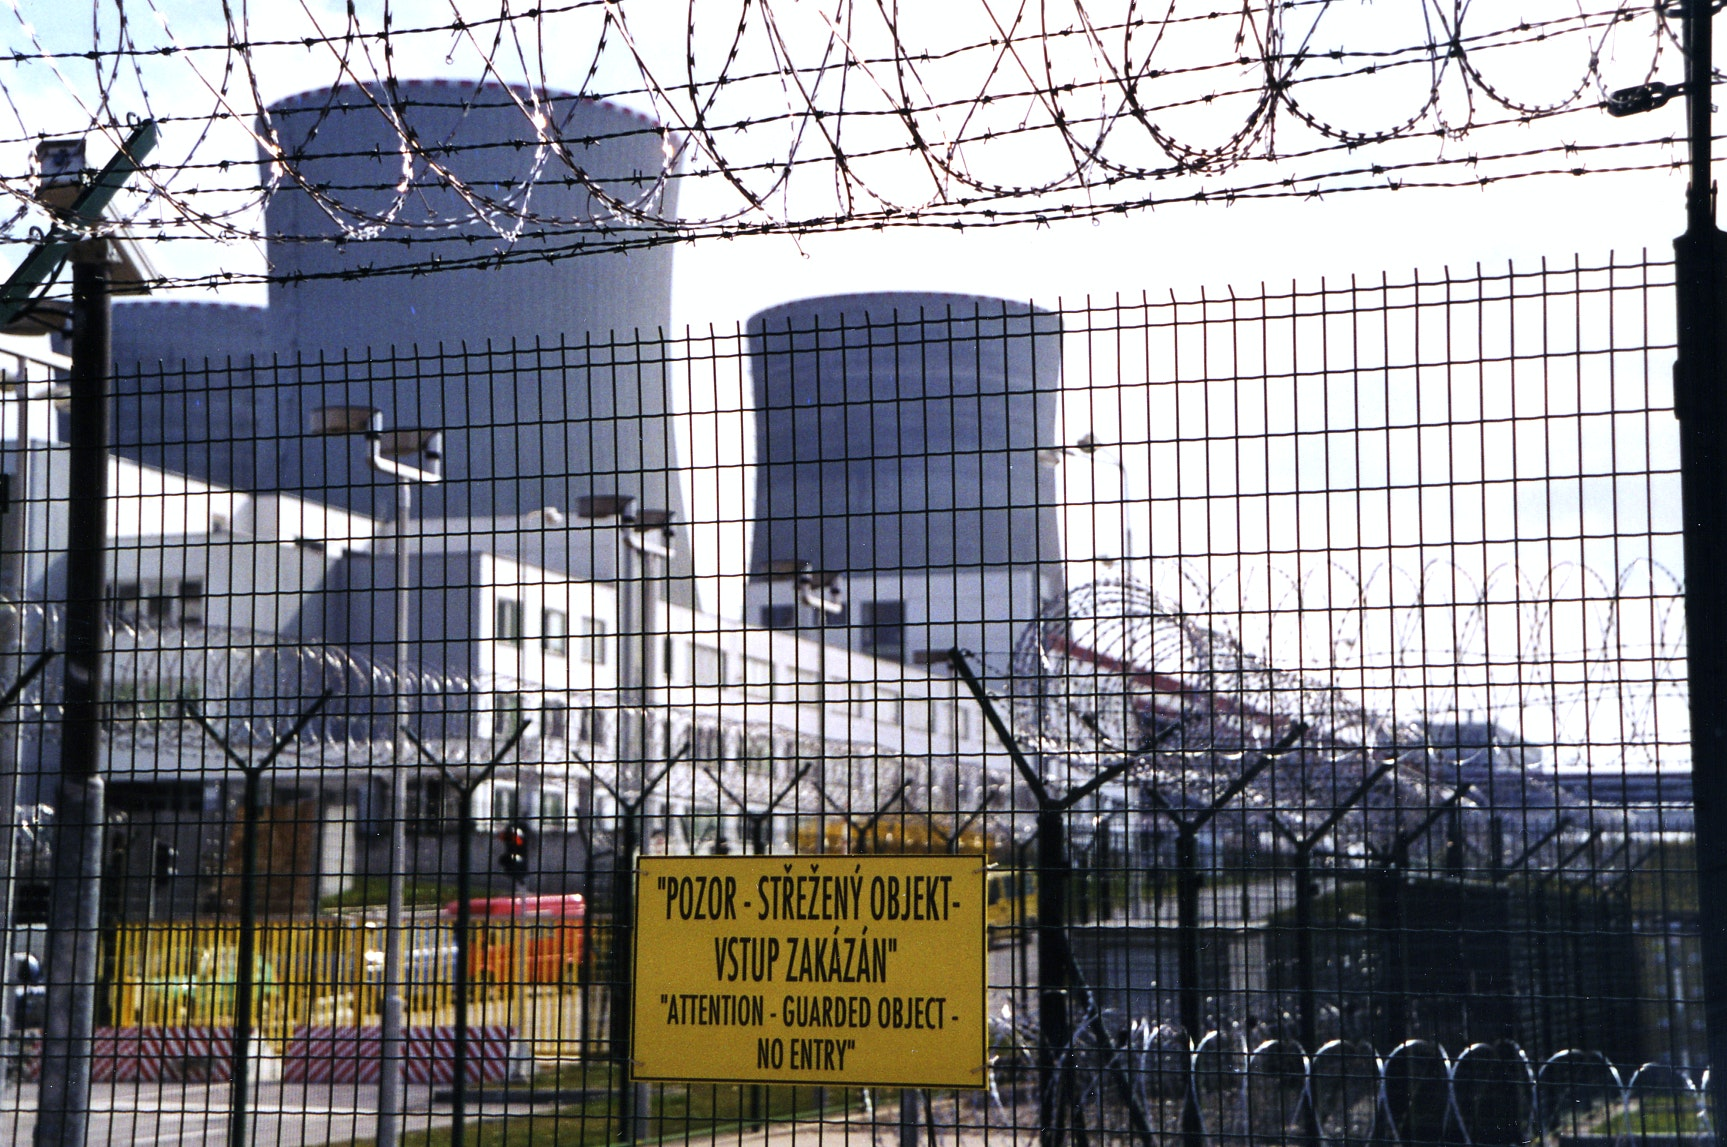 This Mom Is Nuclear Terrorist >> How To Protect Nuclear Plants From Terrorists